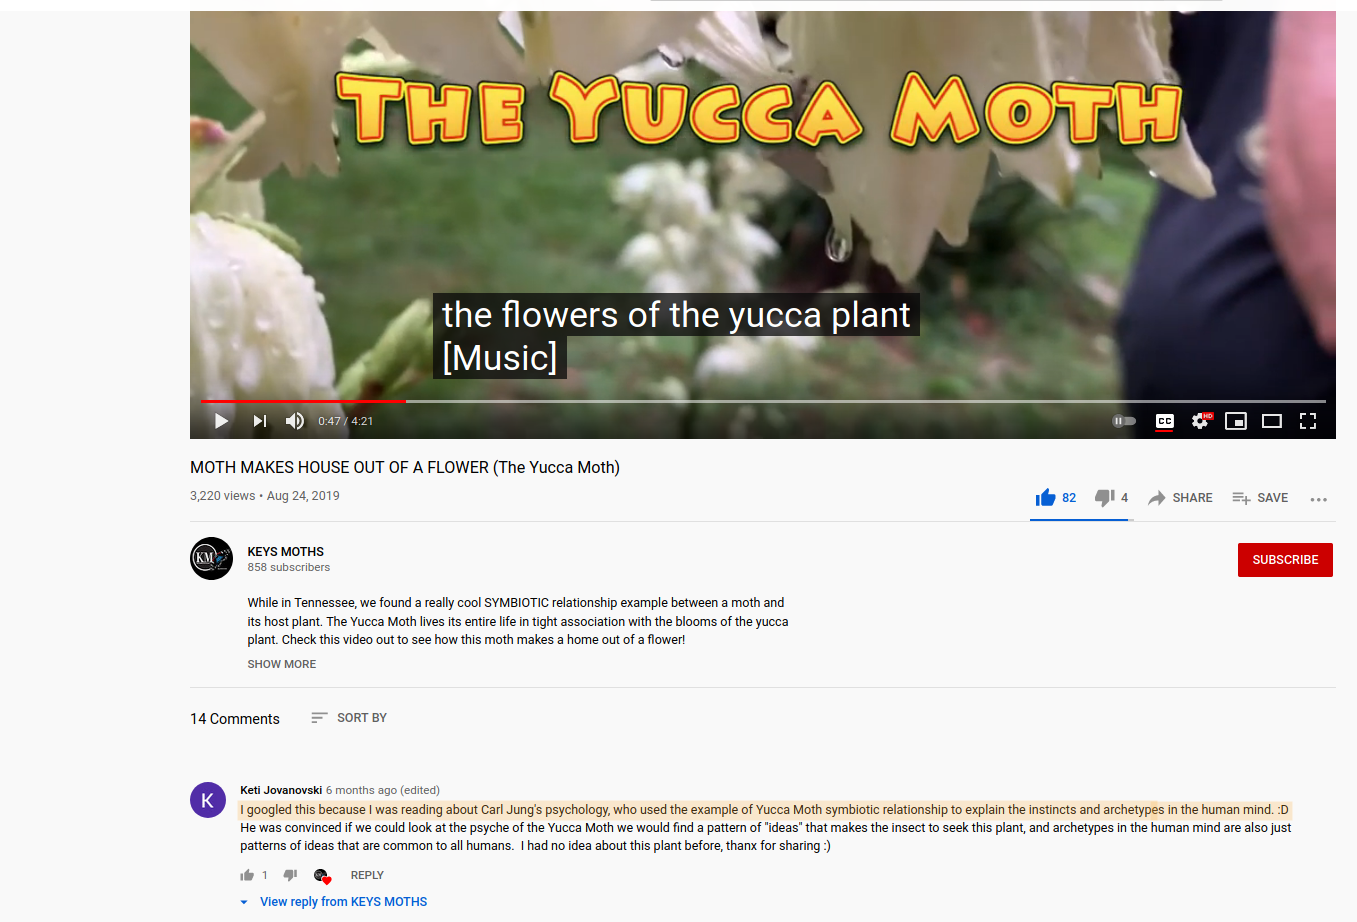 """Screenshot of a YouTube video about yucca moths. In the comments someone posted, """"I googled this because I was reading about Carl Jung's psychology, who used the example of Yucca Moth symbiotic relationship to explain the instincts and archetypes in the human mind. :D"""""""